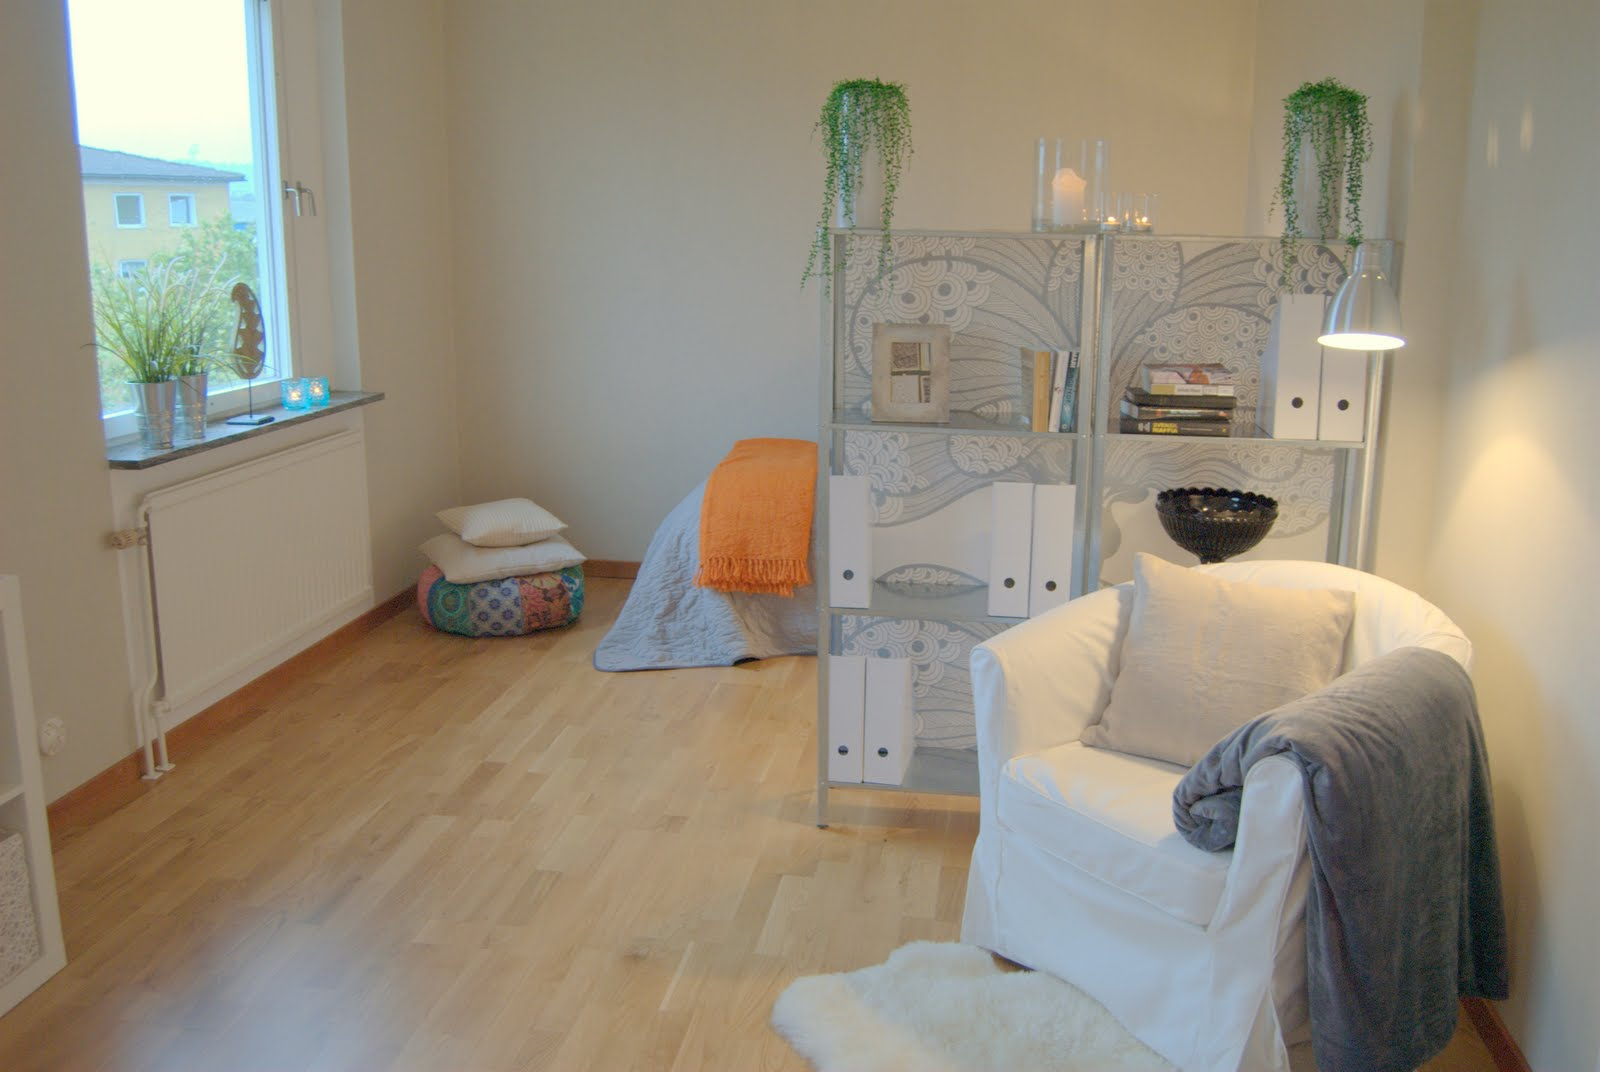 Staged bysandra: homestaging 2